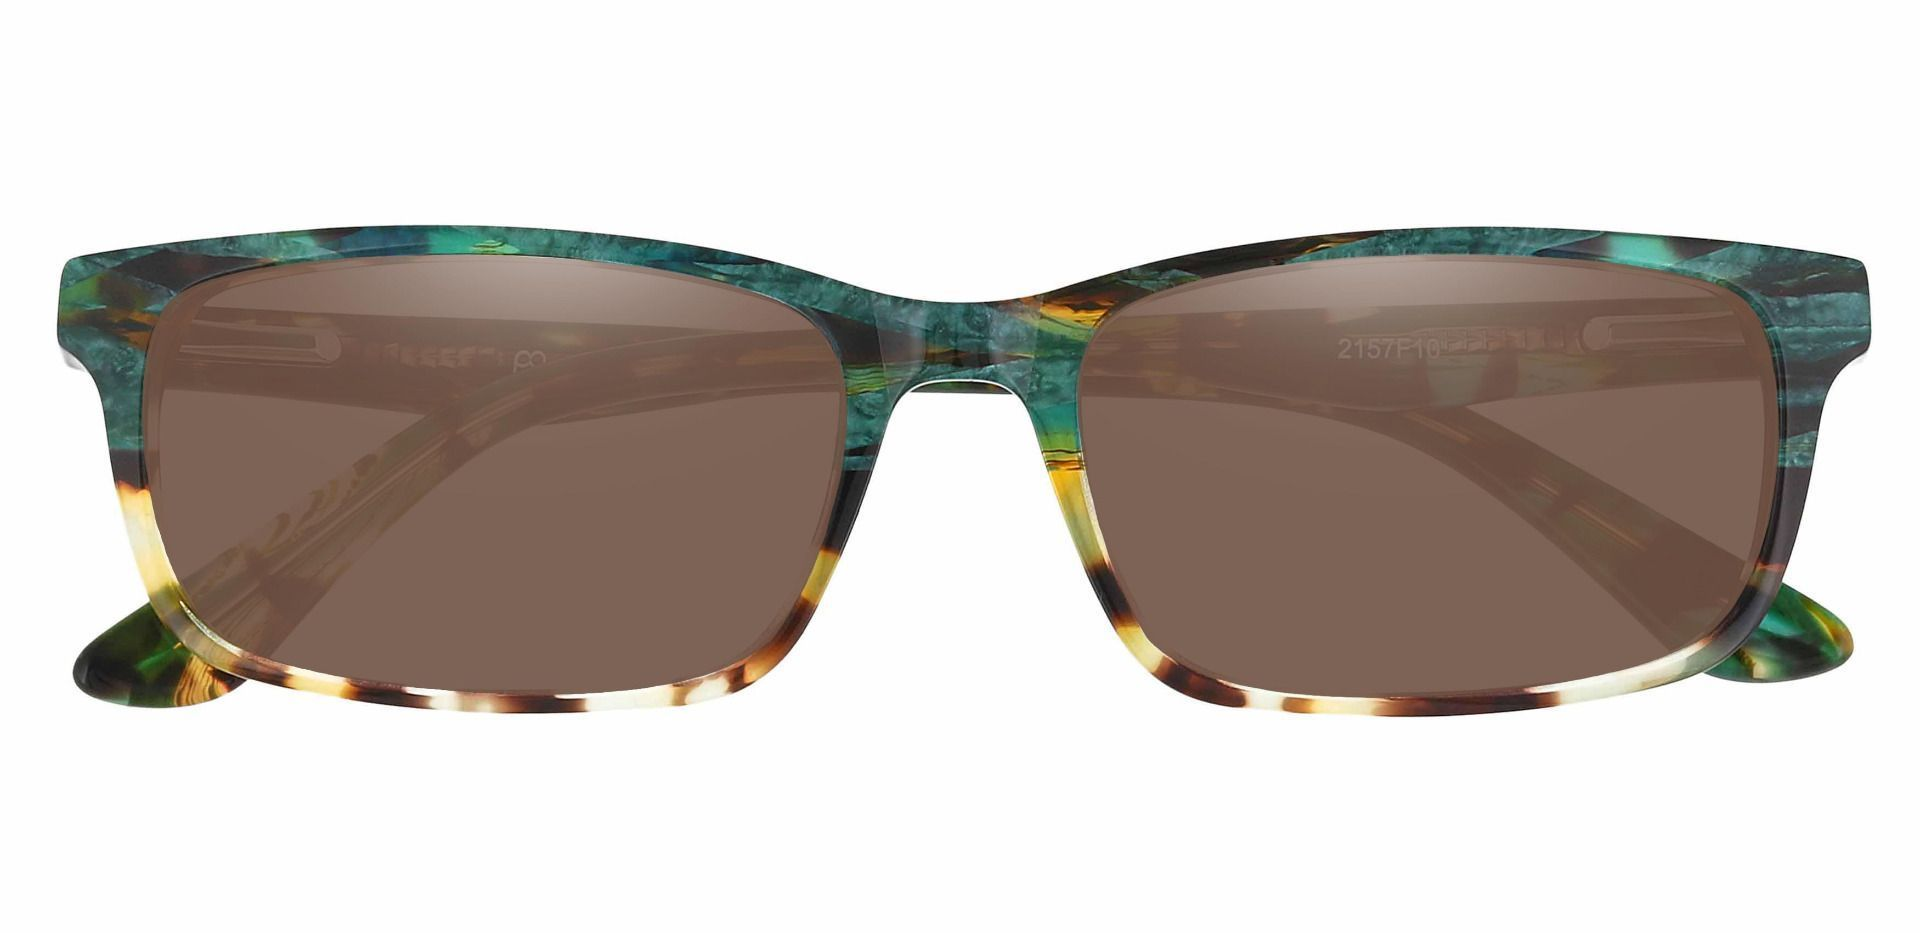 Ennis Rectangle Non-Rx Sunglasses - Floral Frame With Brown Lenses